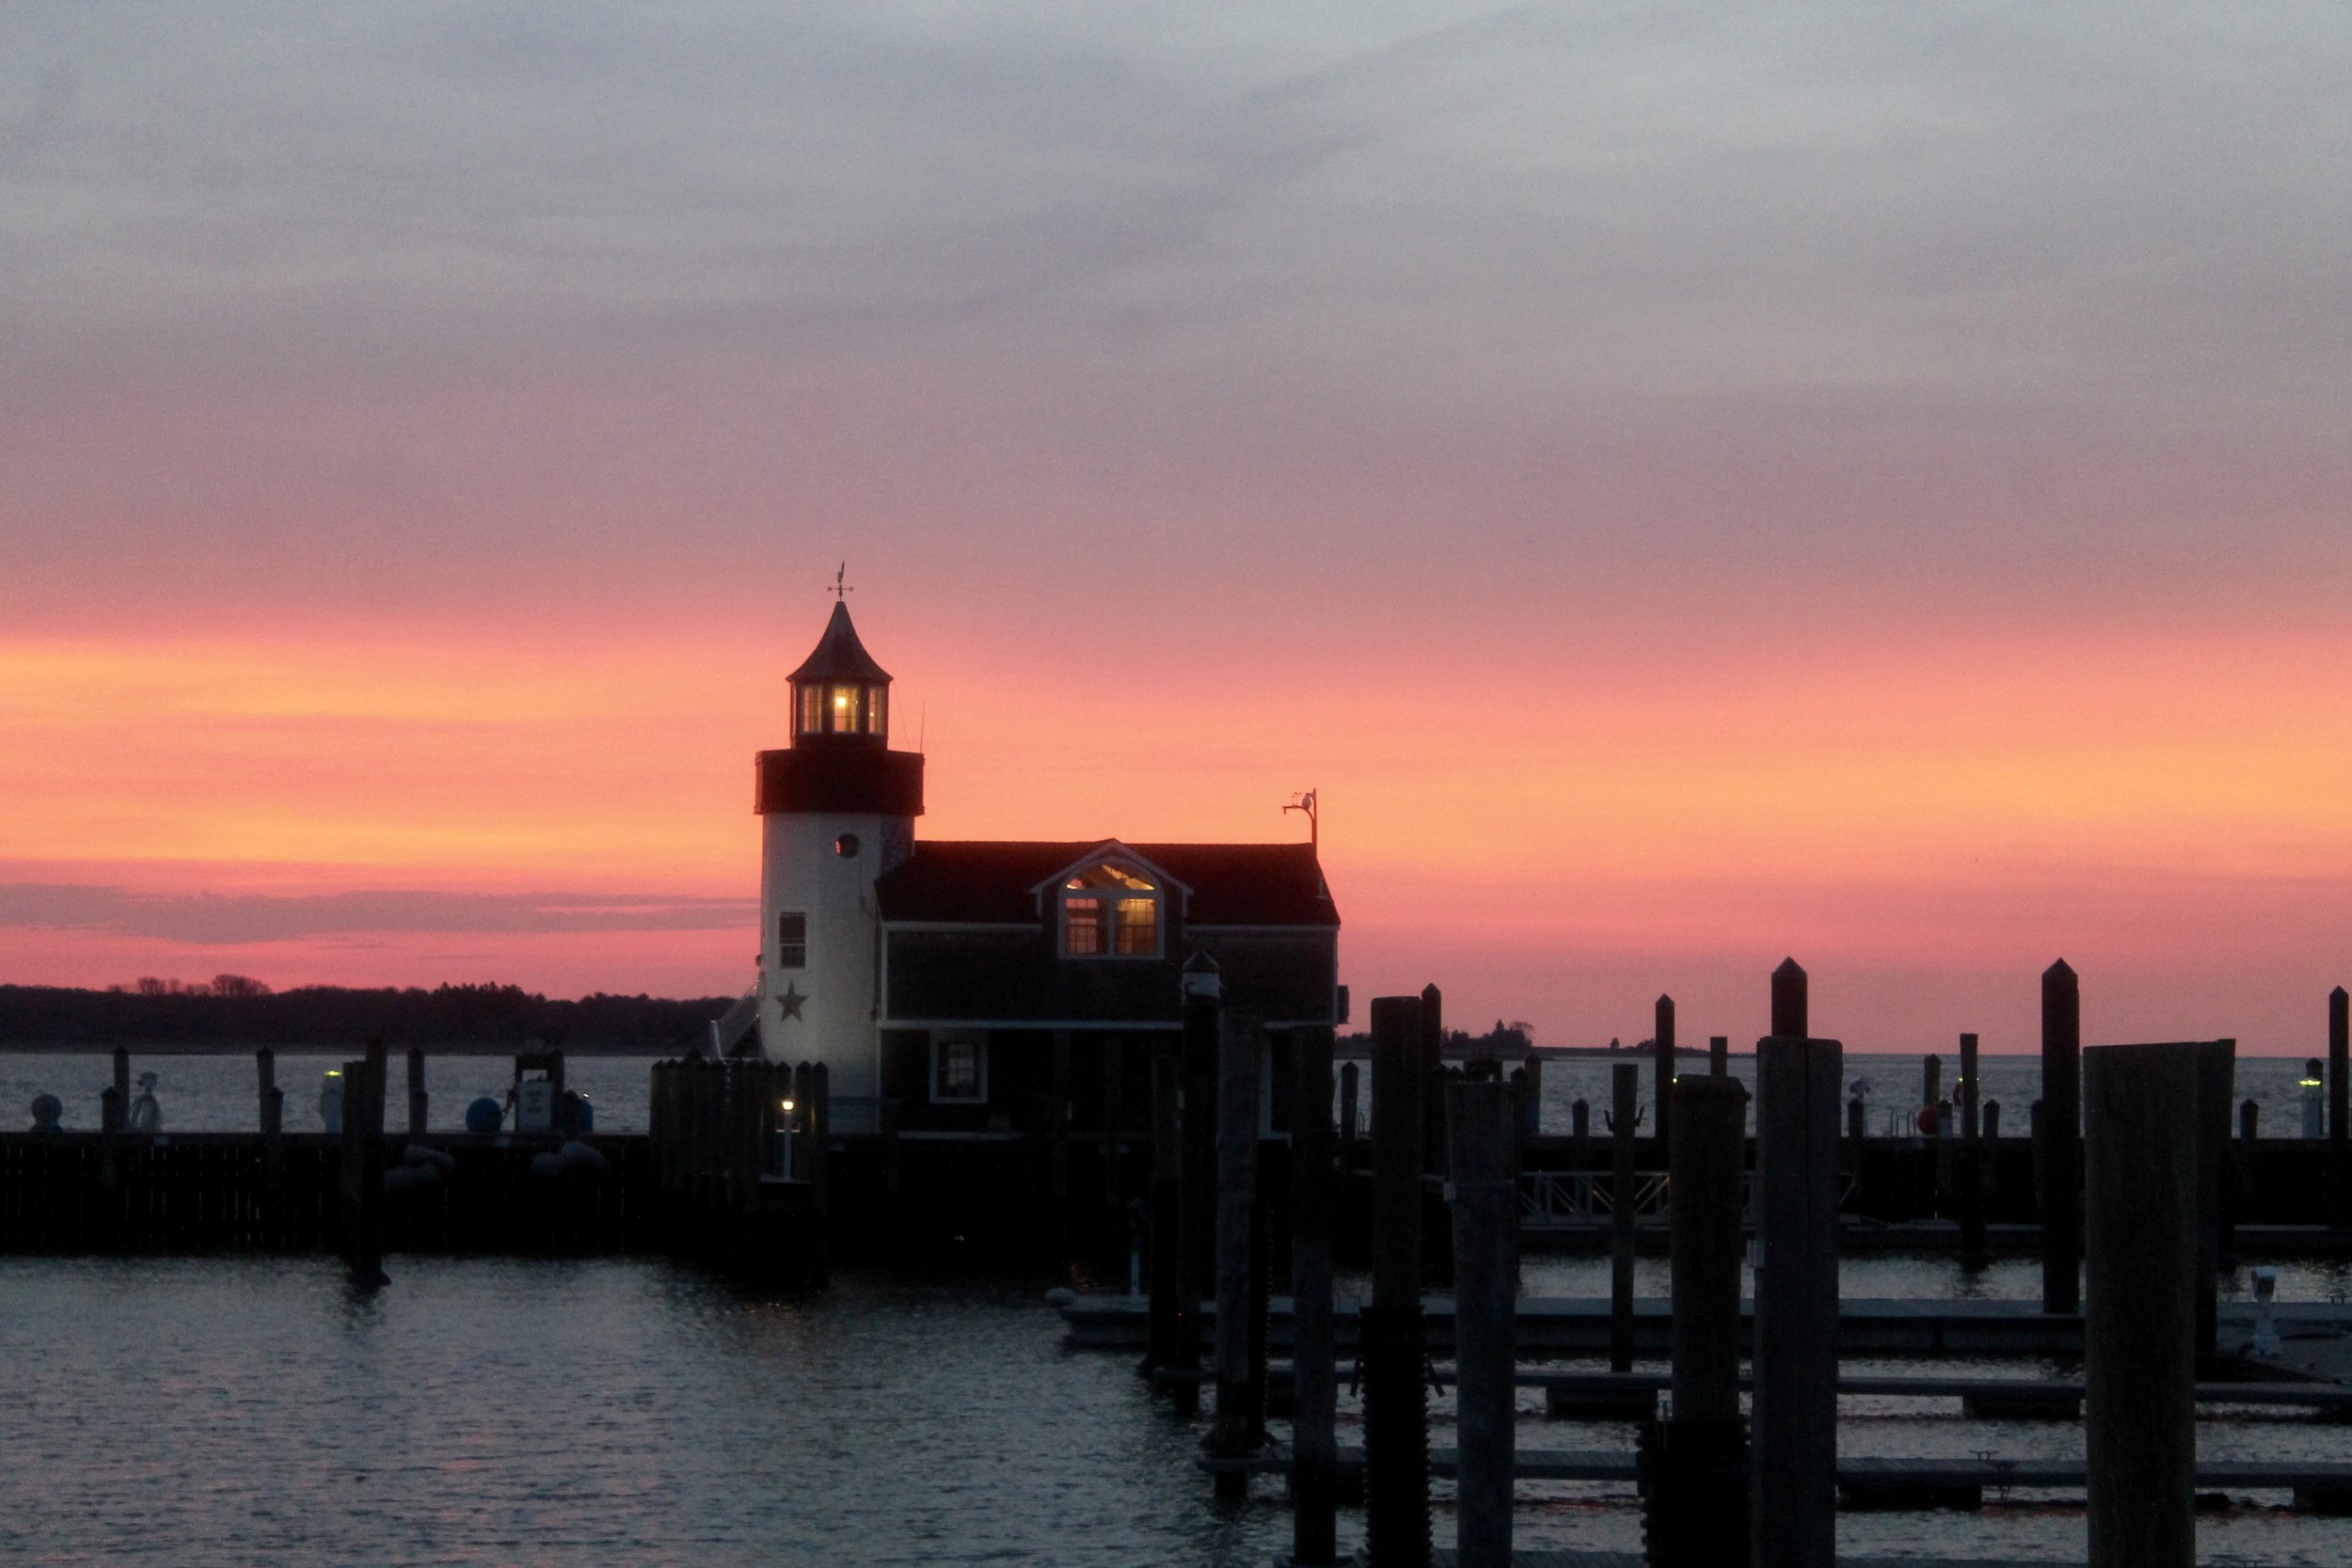 Quintessentially Connecticut :: Celebrate Spring at Saybrook Point Inn, Old Saybrook, Connecticut  Have you ever dreamed of sleeping in a lighthouse? At the Saybrook Point Inn this dream becomes a reality!